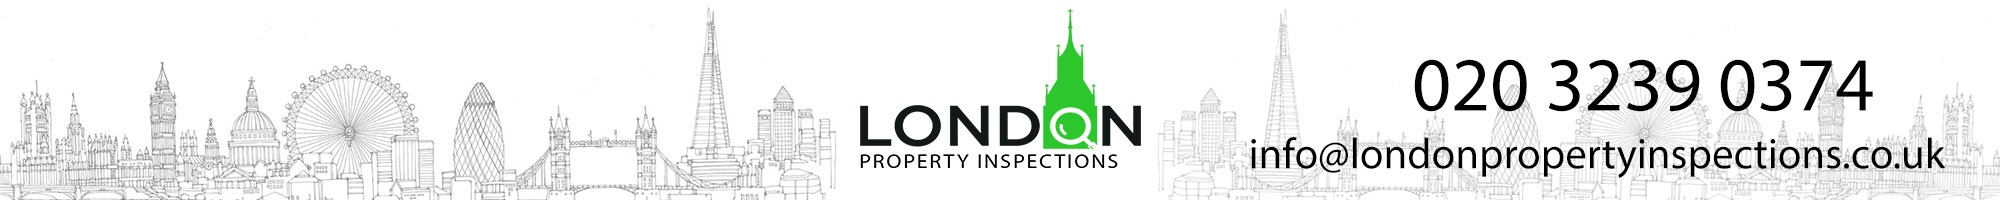 London Property Inspections